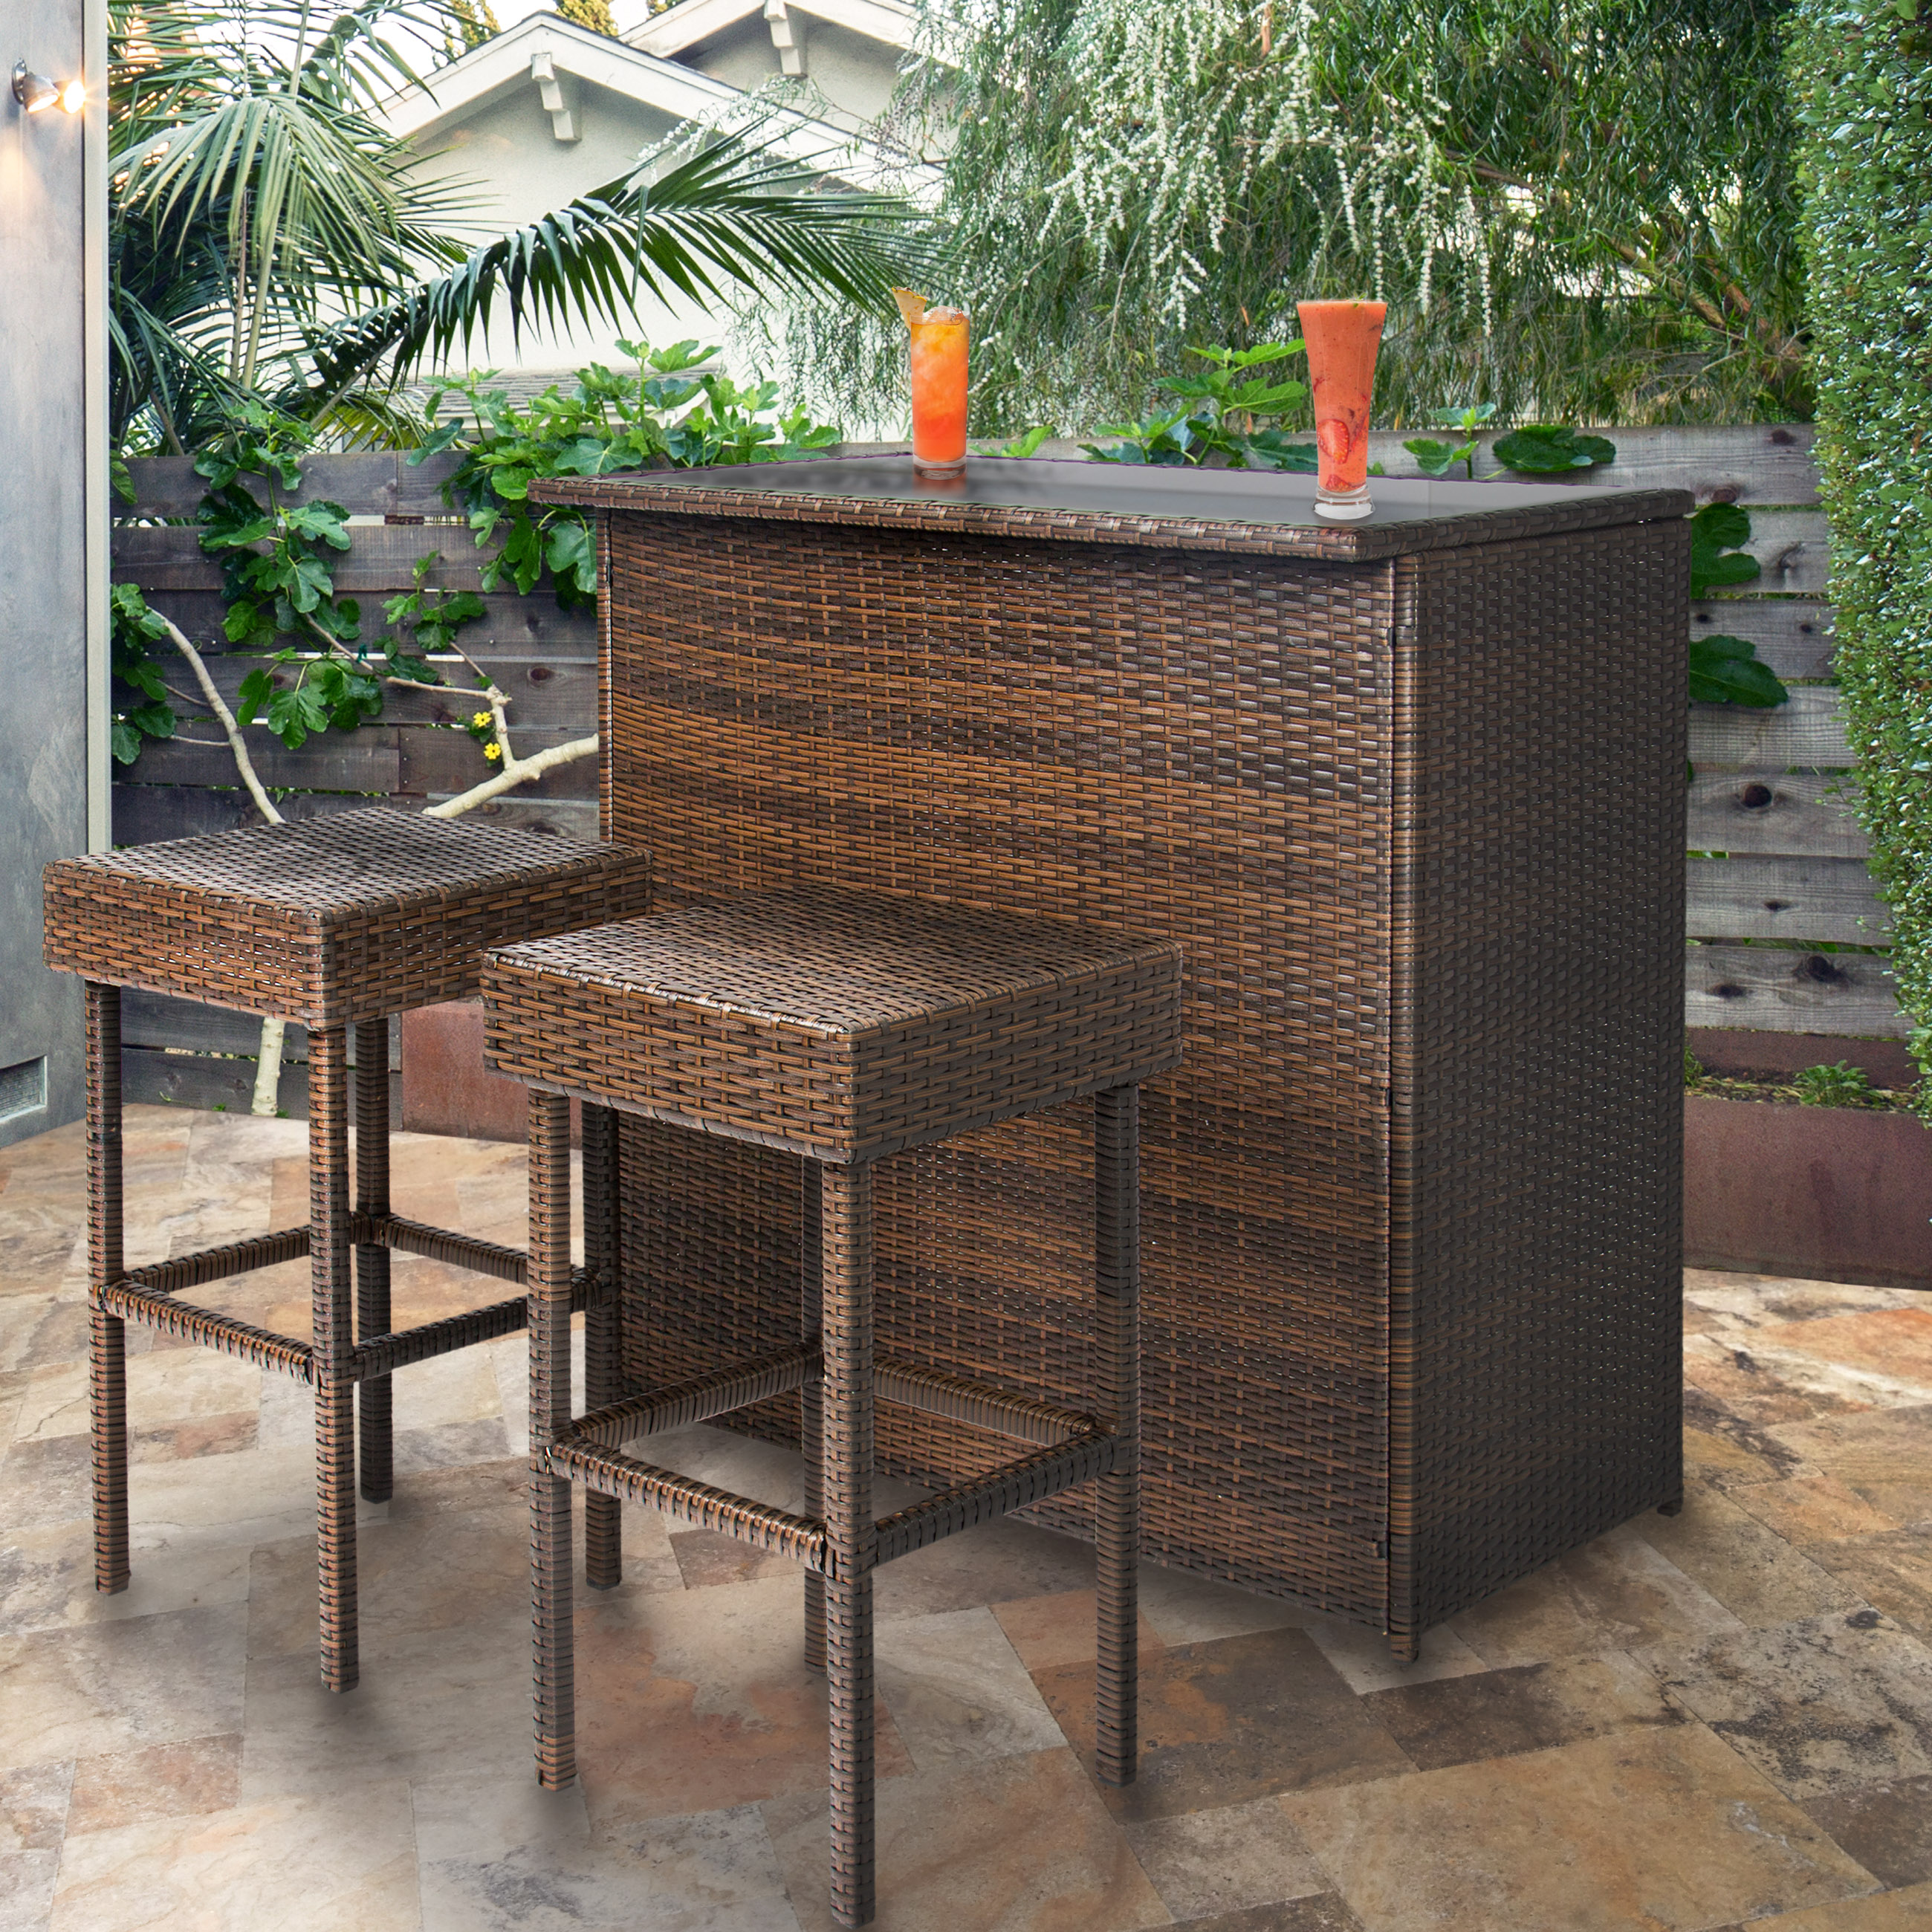 Charmant Best Choice Products 3PC Wicker Bar Set Patio Outdoor Backyard Table U0026 2  Stools Rattan Garden